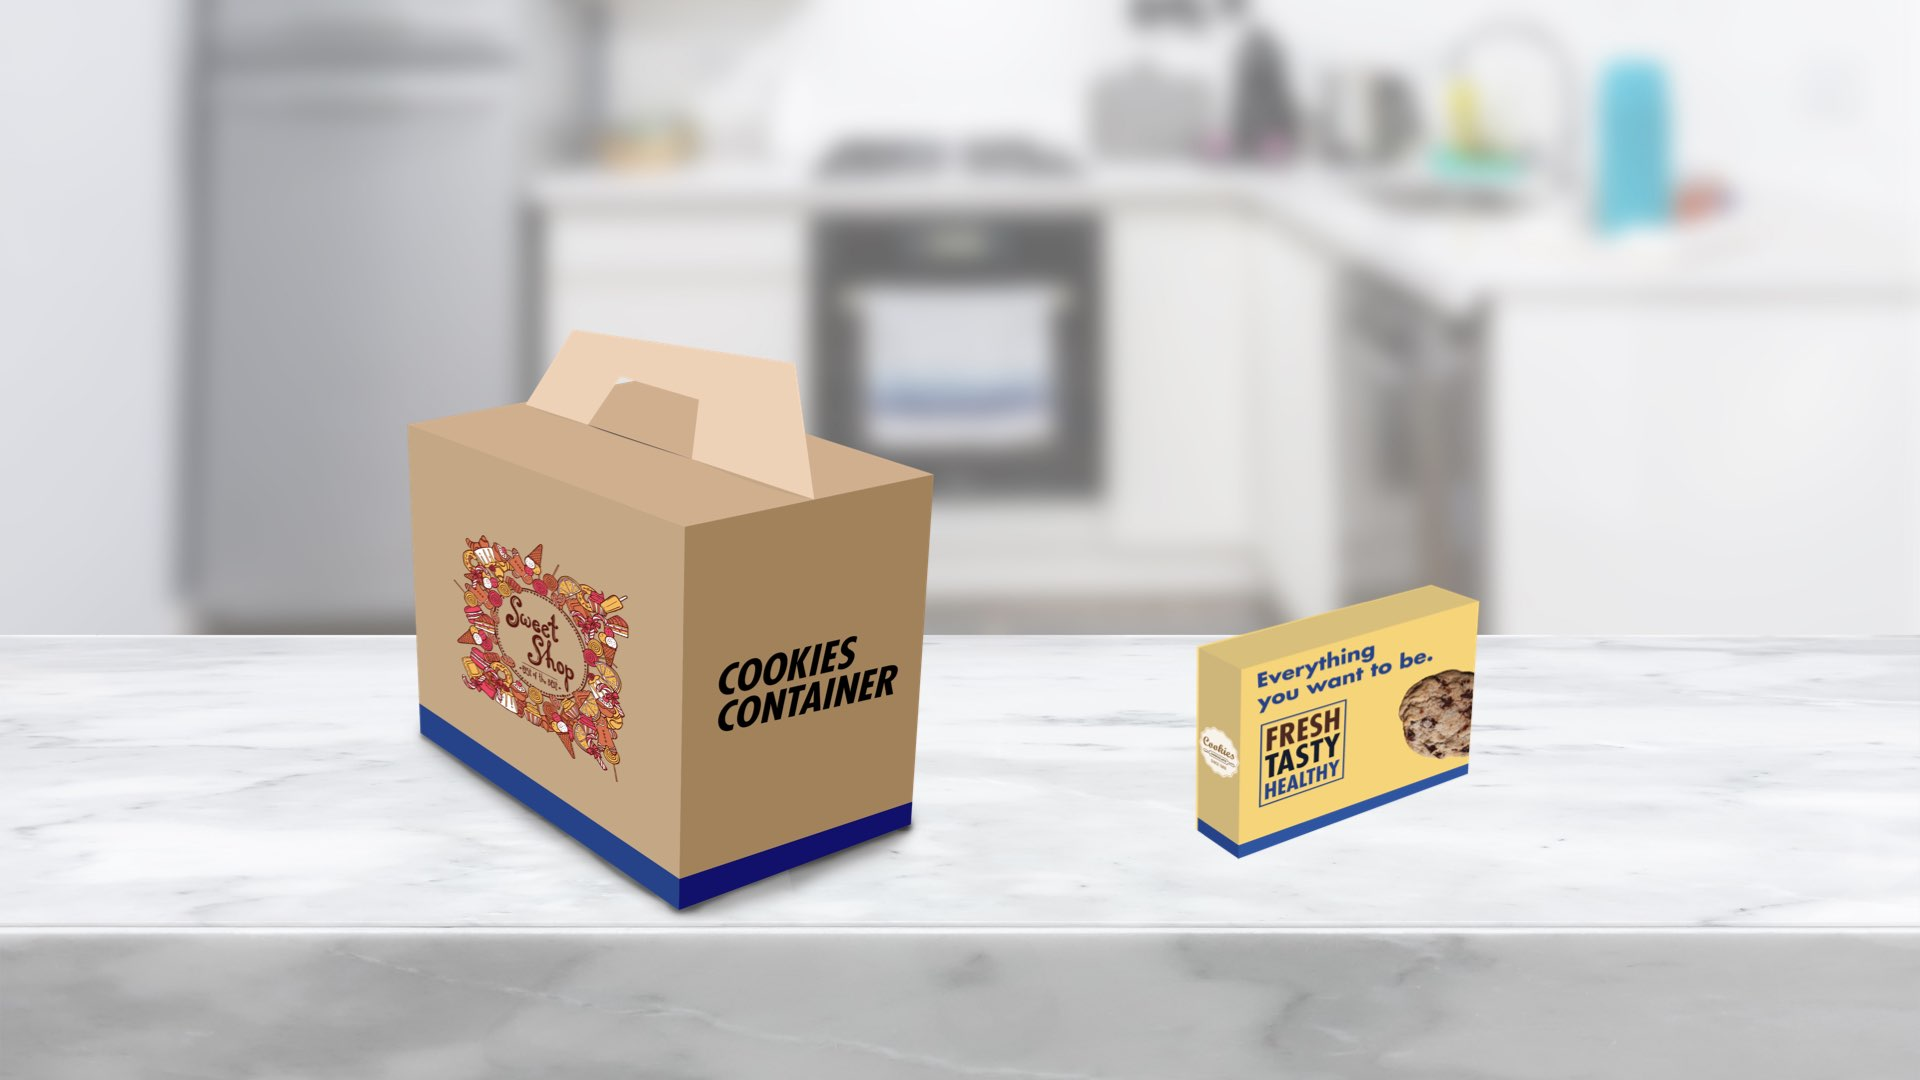 Girl Guide Cookies [Day 3] - How Many Boxes - 03 - Spark Update Estimate Image